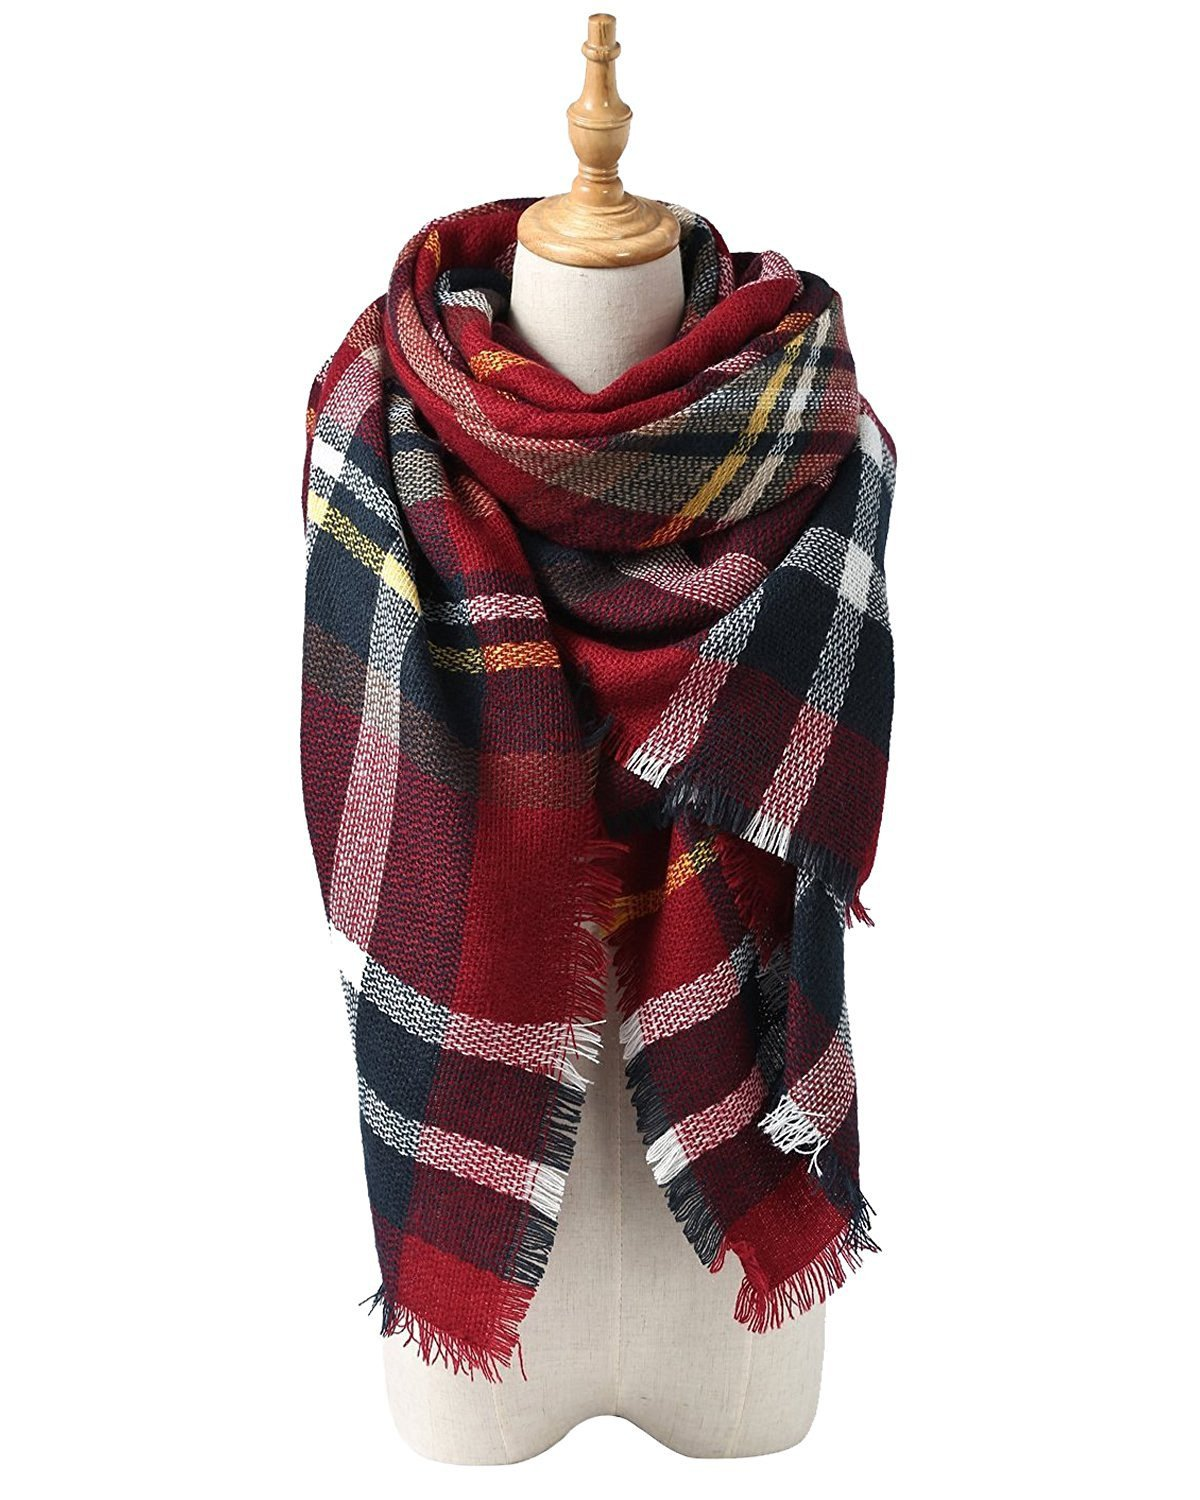 Blanket Scarf Pashmina Stylish Warm Wrap Shawl Classical Plaid Throw Blanket Urban Virgin MNUSAUVBH0A6699